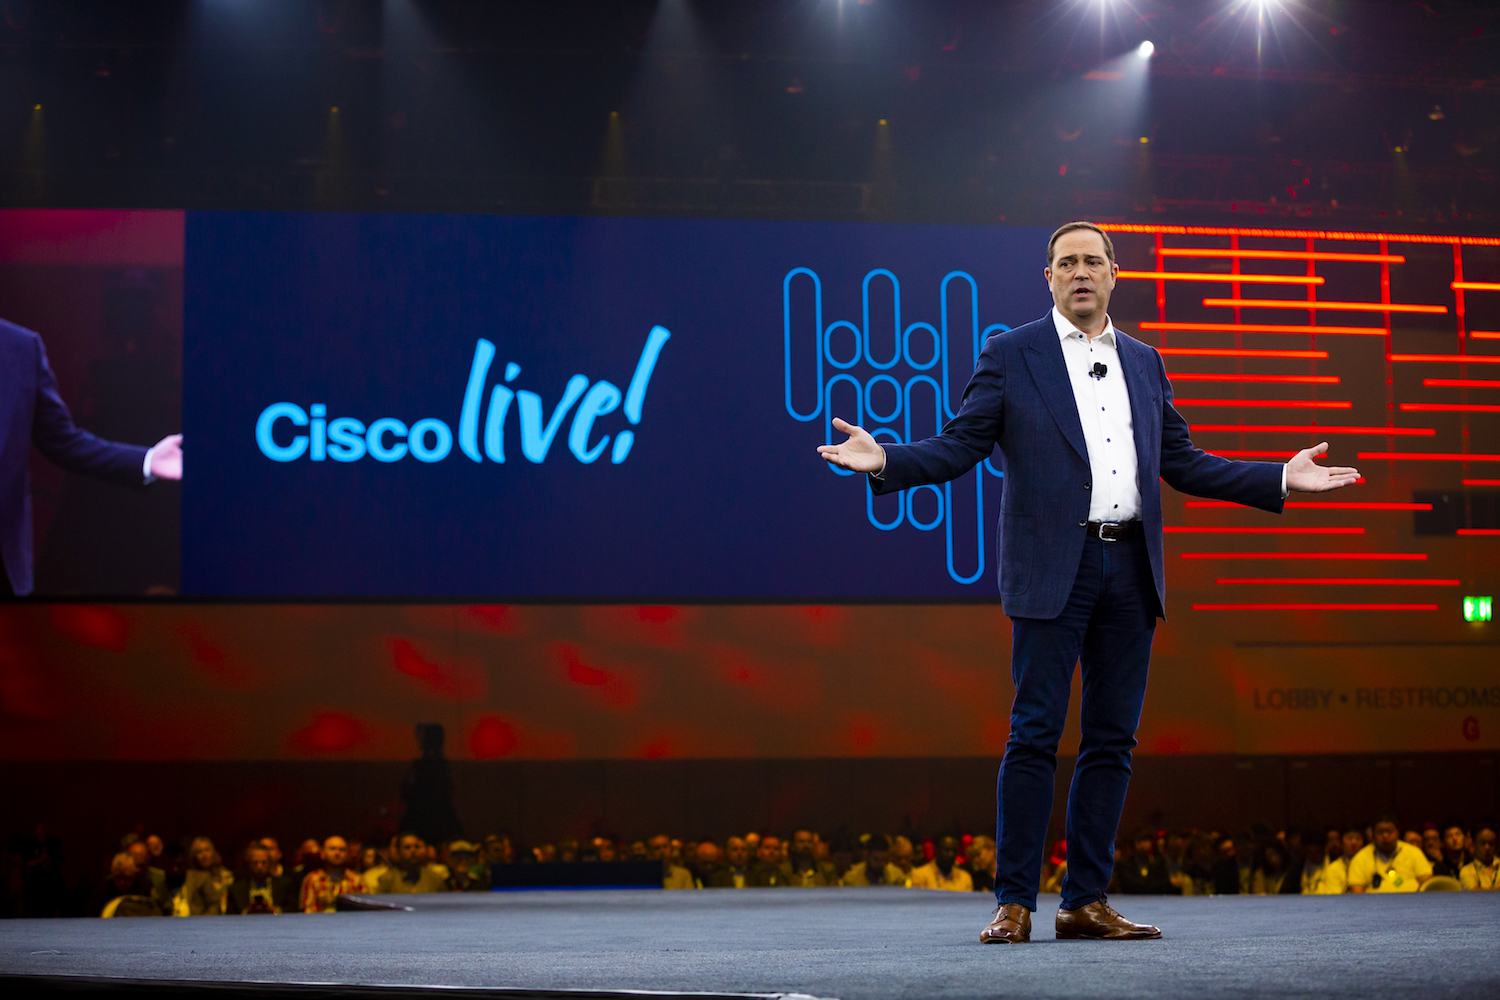 How the world changed: Cisco CEO on Rakuten's new mobile network